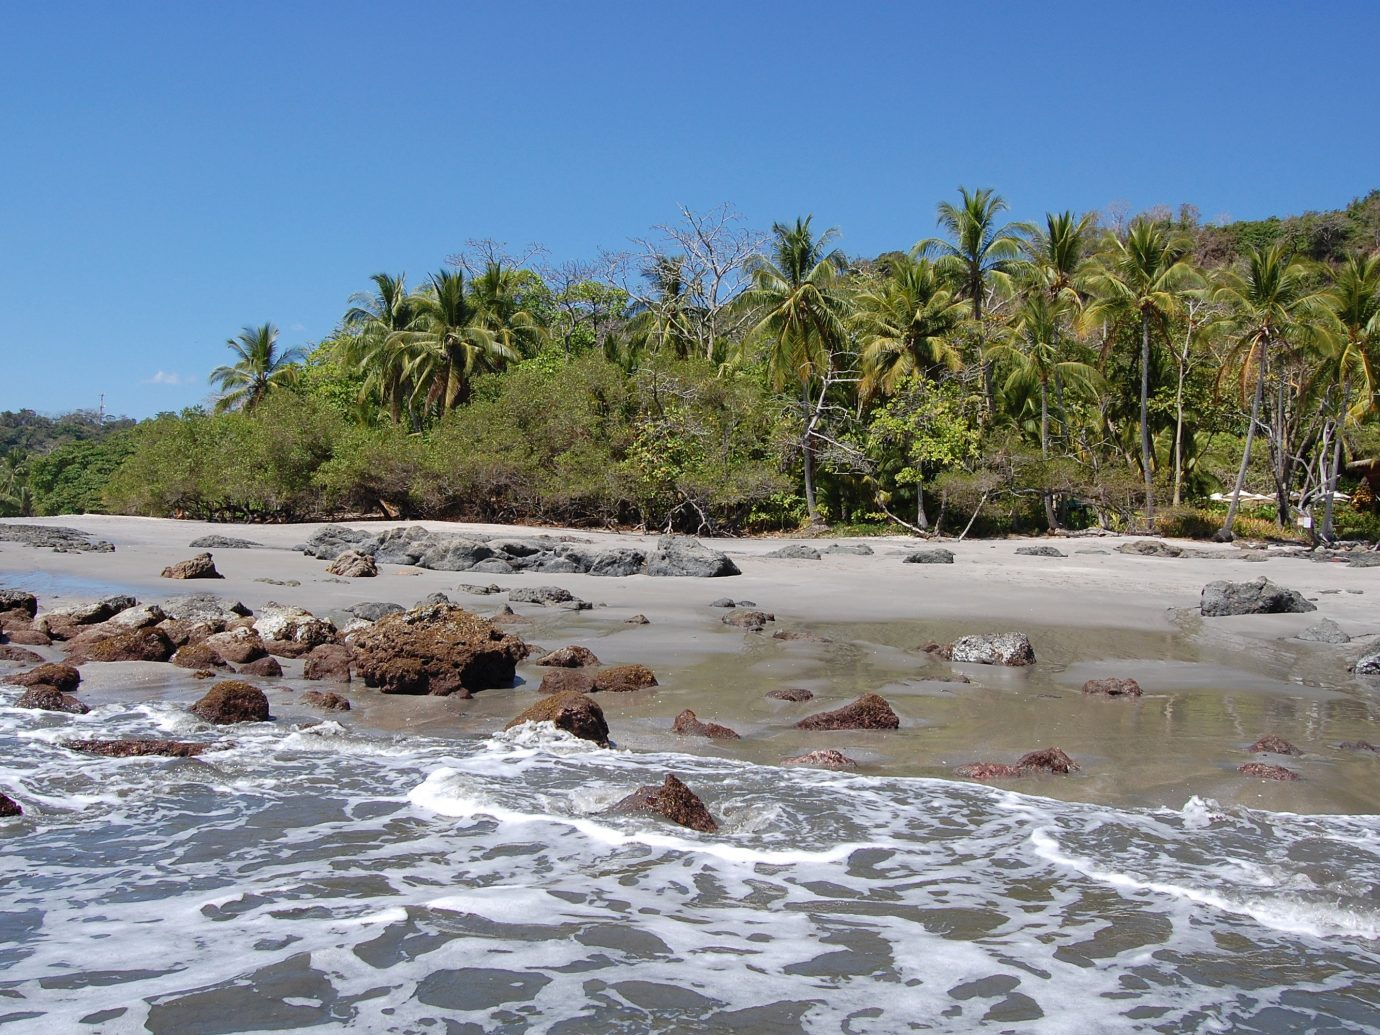 Beach at Playa Montezuma in Costa Rica